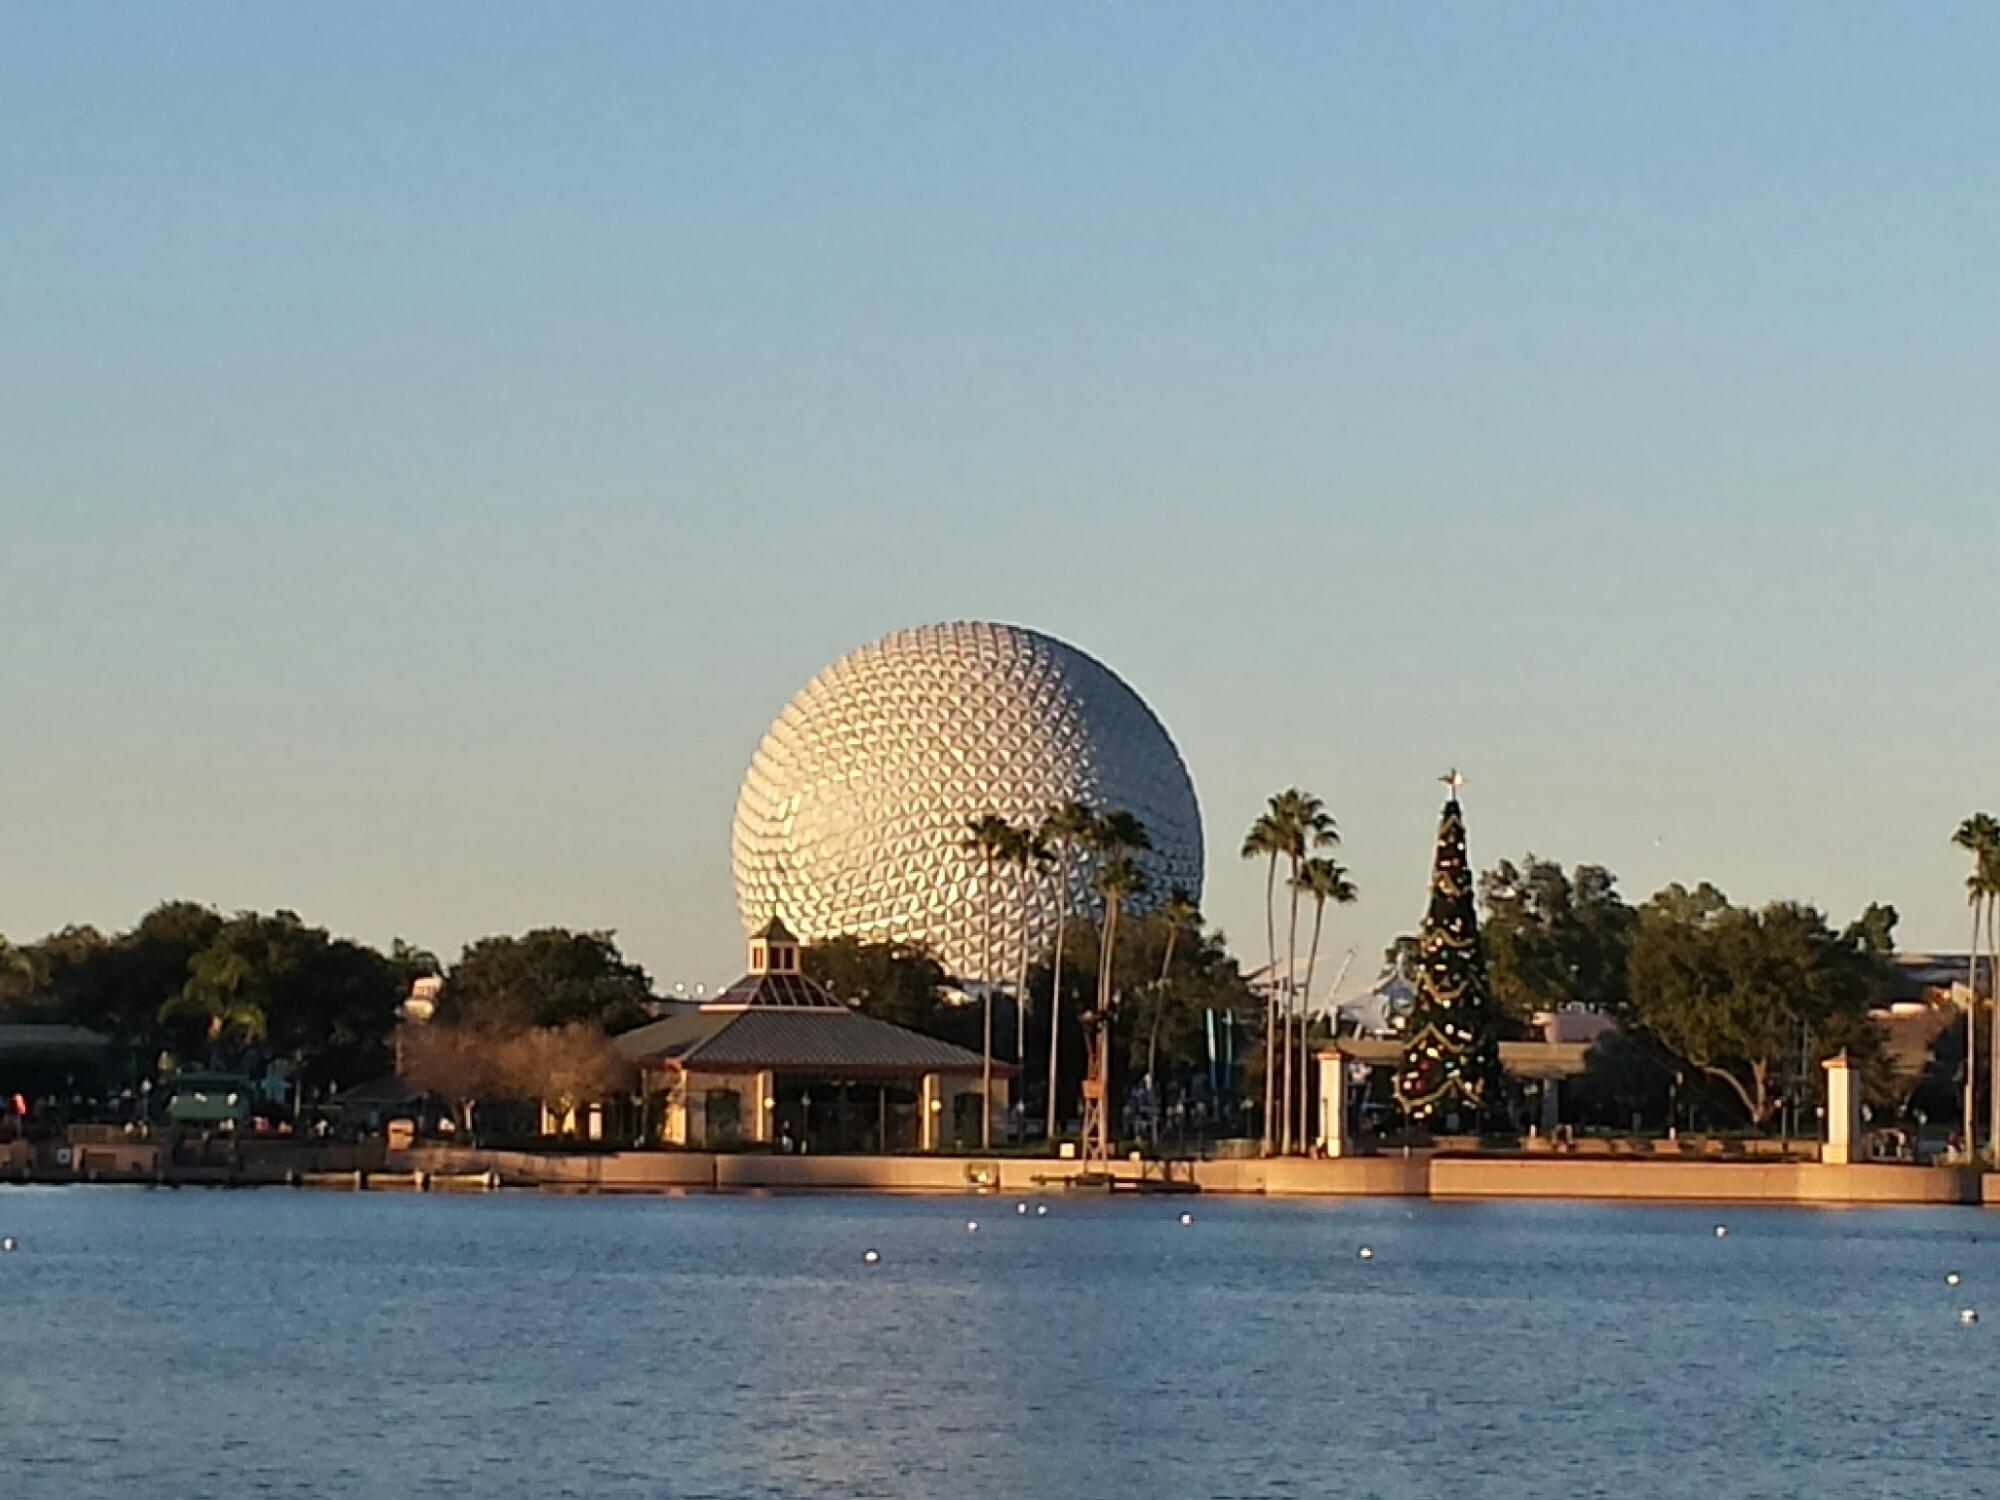 Spaceship Earth & the #Epcot Christmas tree as the sun is setting this evening